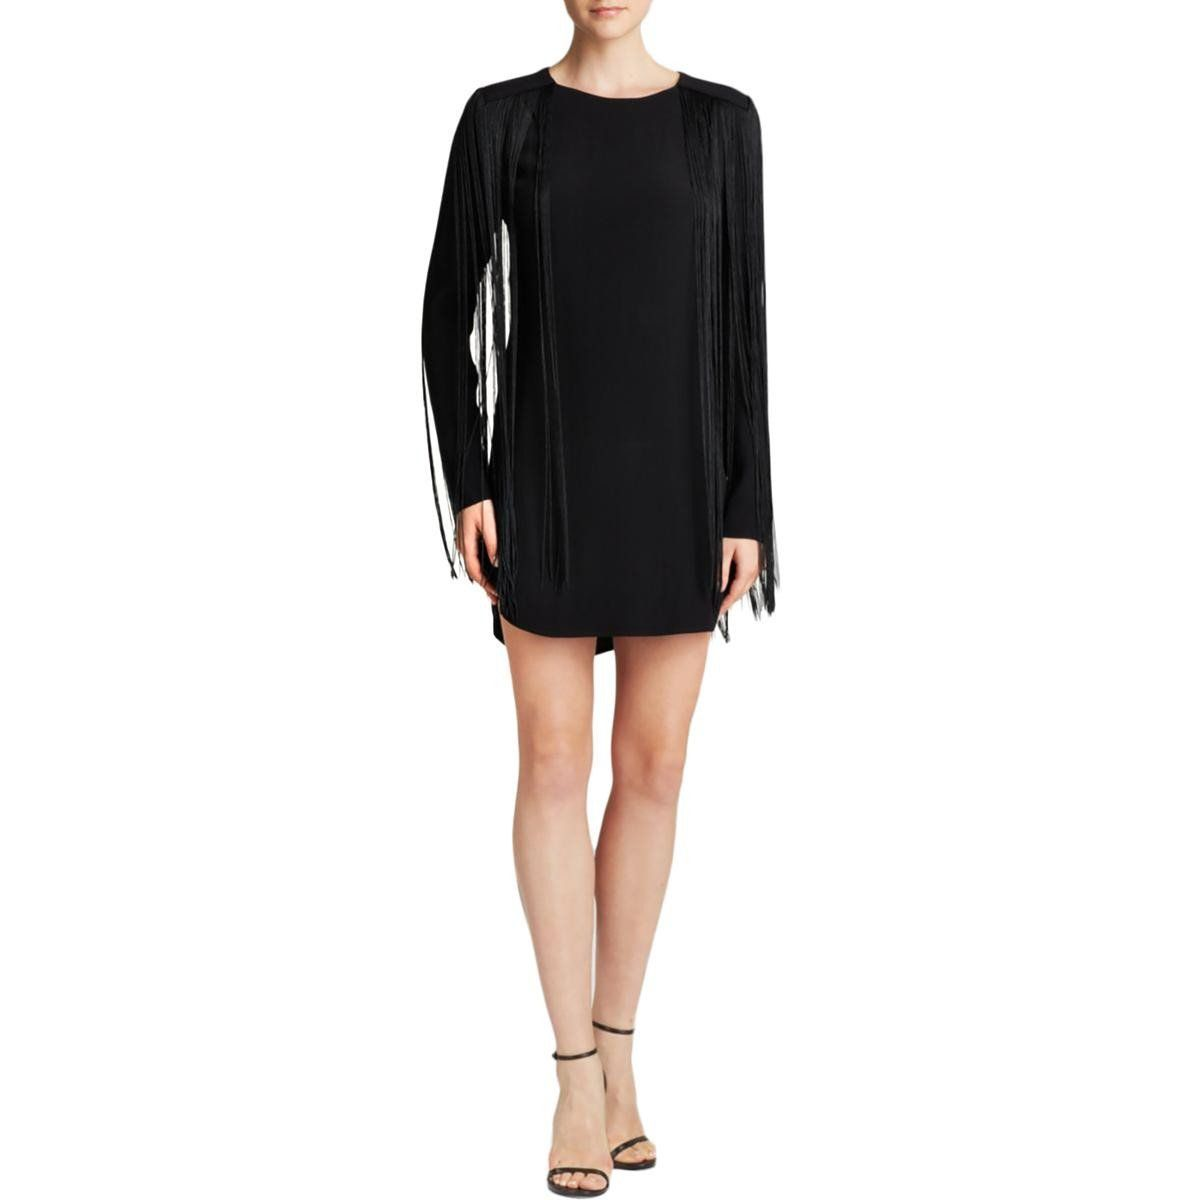 Womens fringe long sleeves cocktail dress products